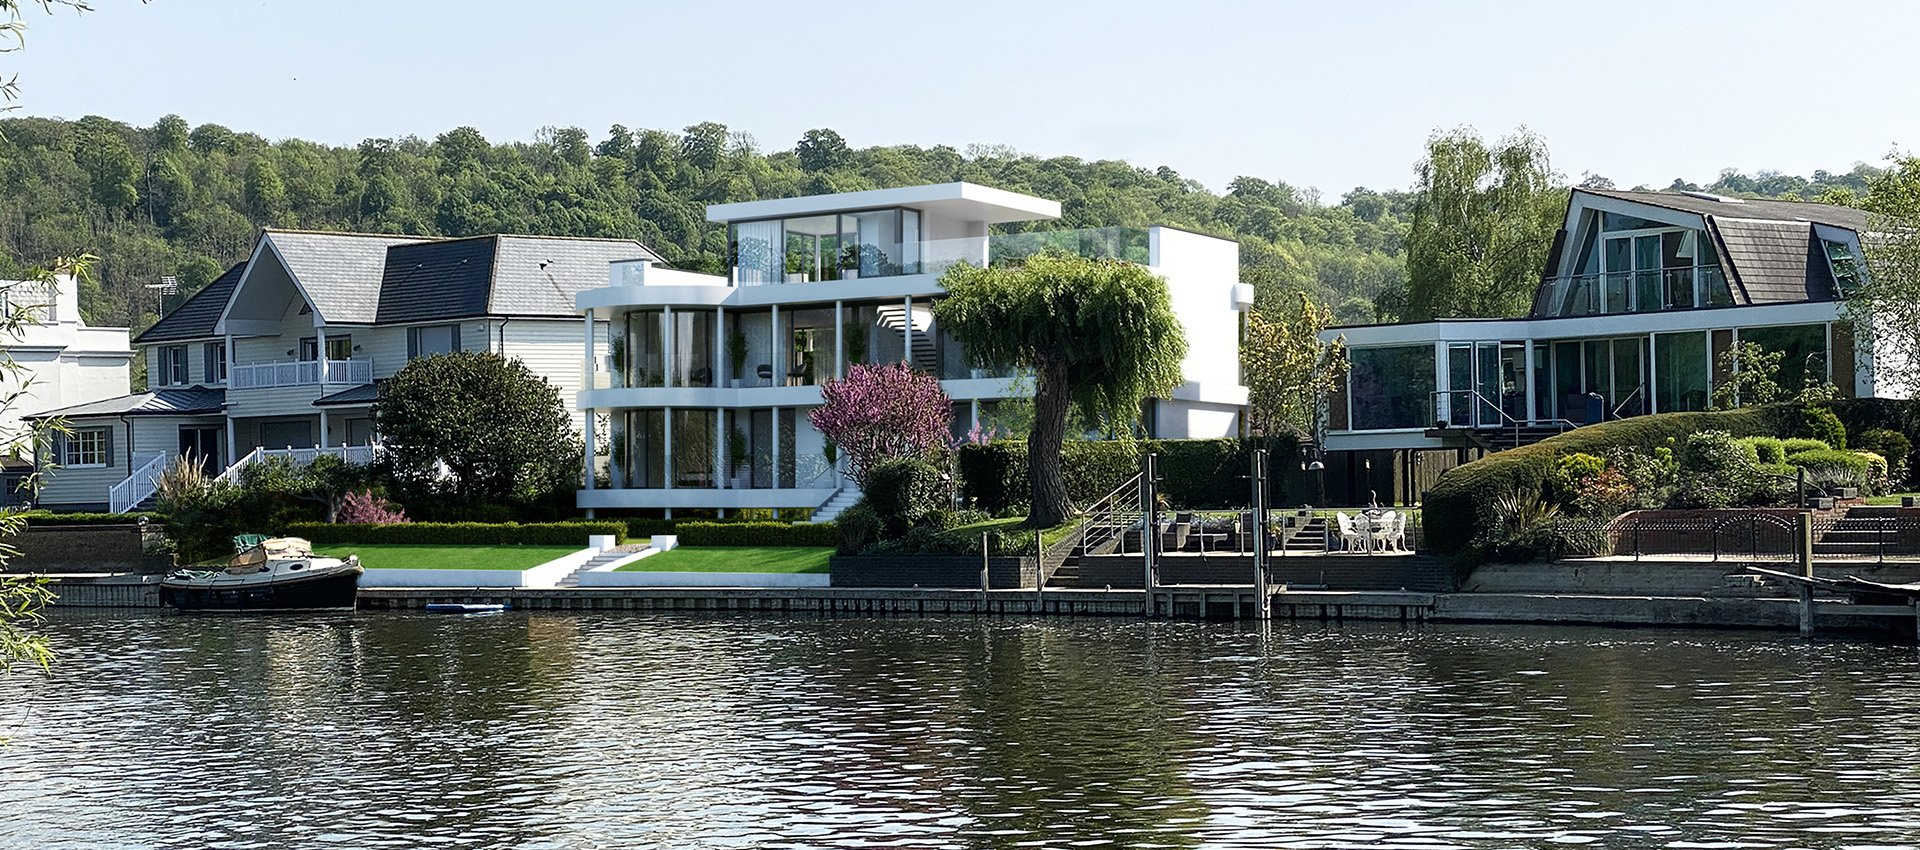 Contemporary residence on the Thames, Buckinghamshire